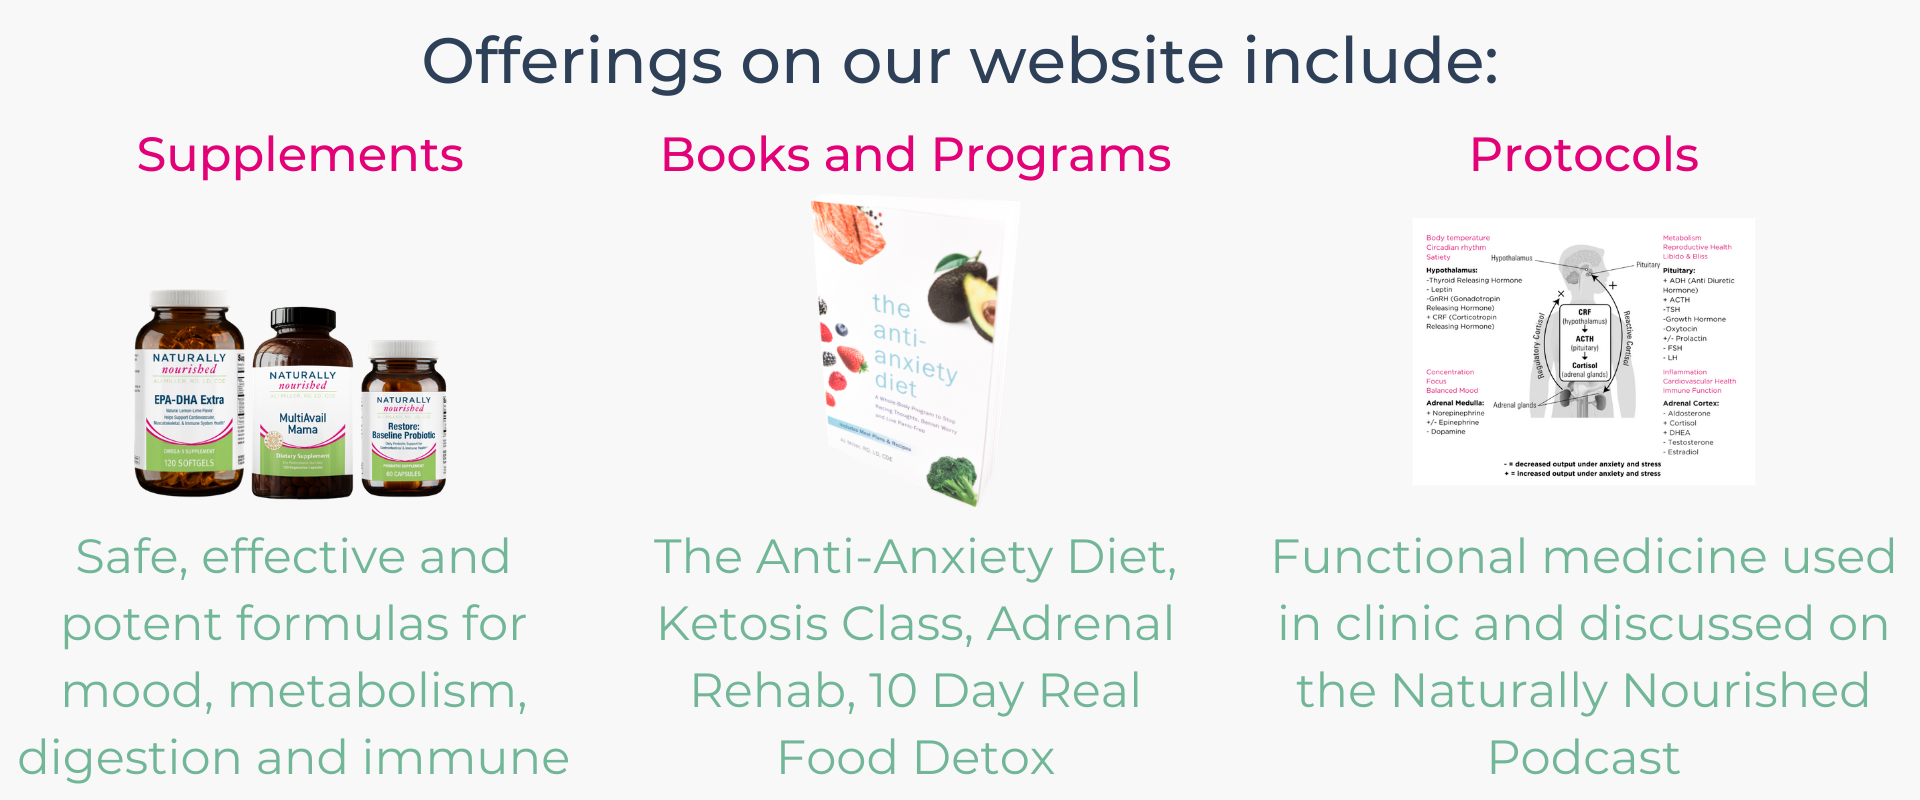 This website includes supplements, books and programs and protocols